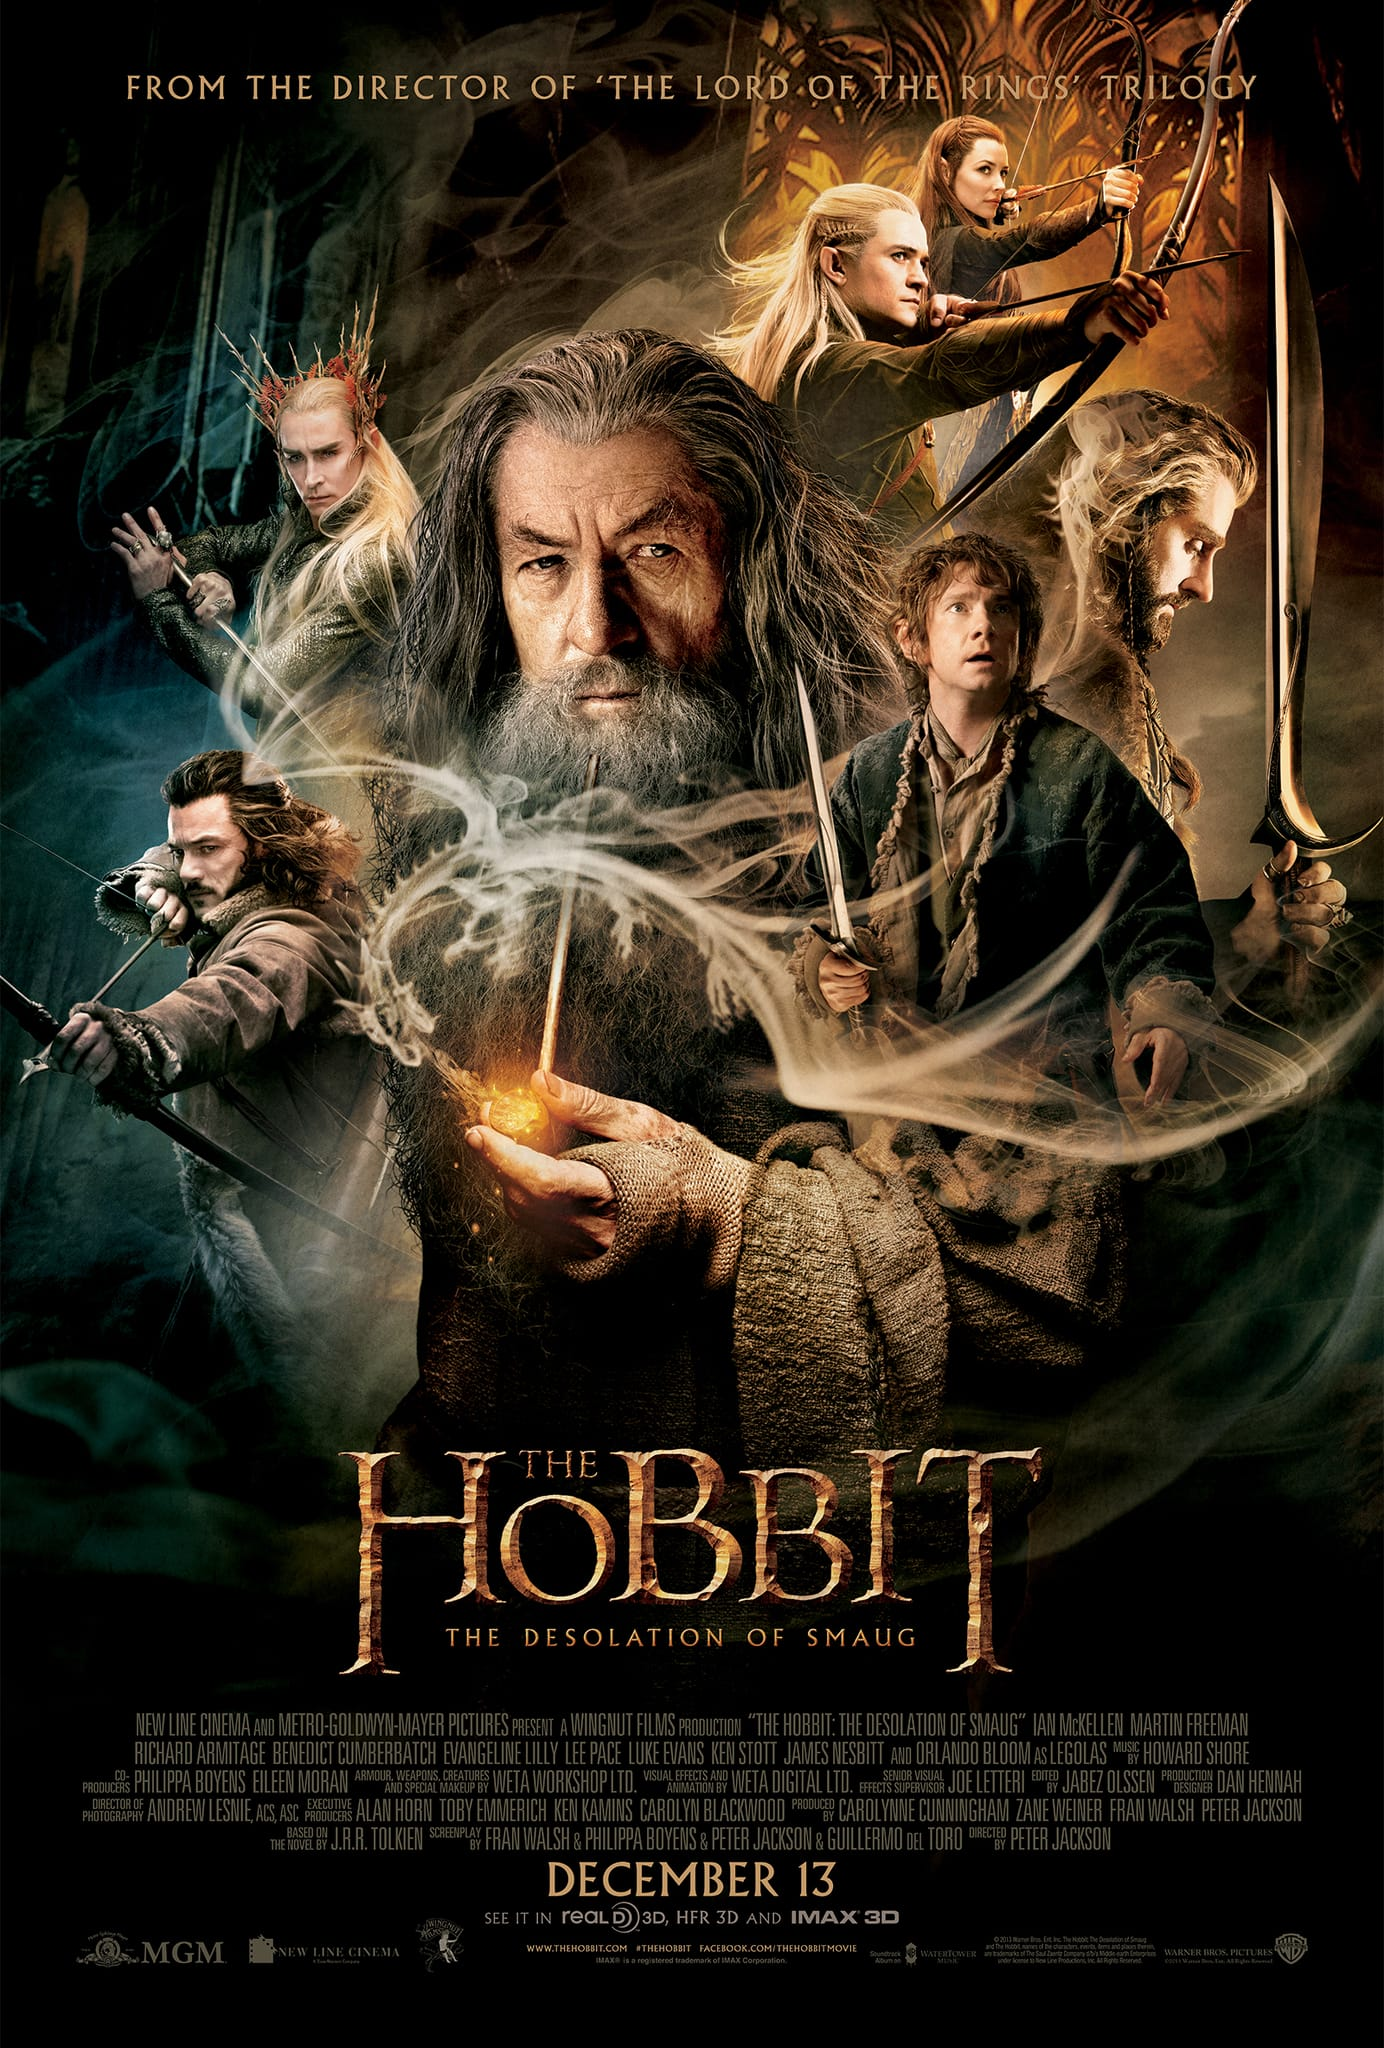 The Hobbit: The Desolation of Smaug by Peter Jackson poster film movie cinema